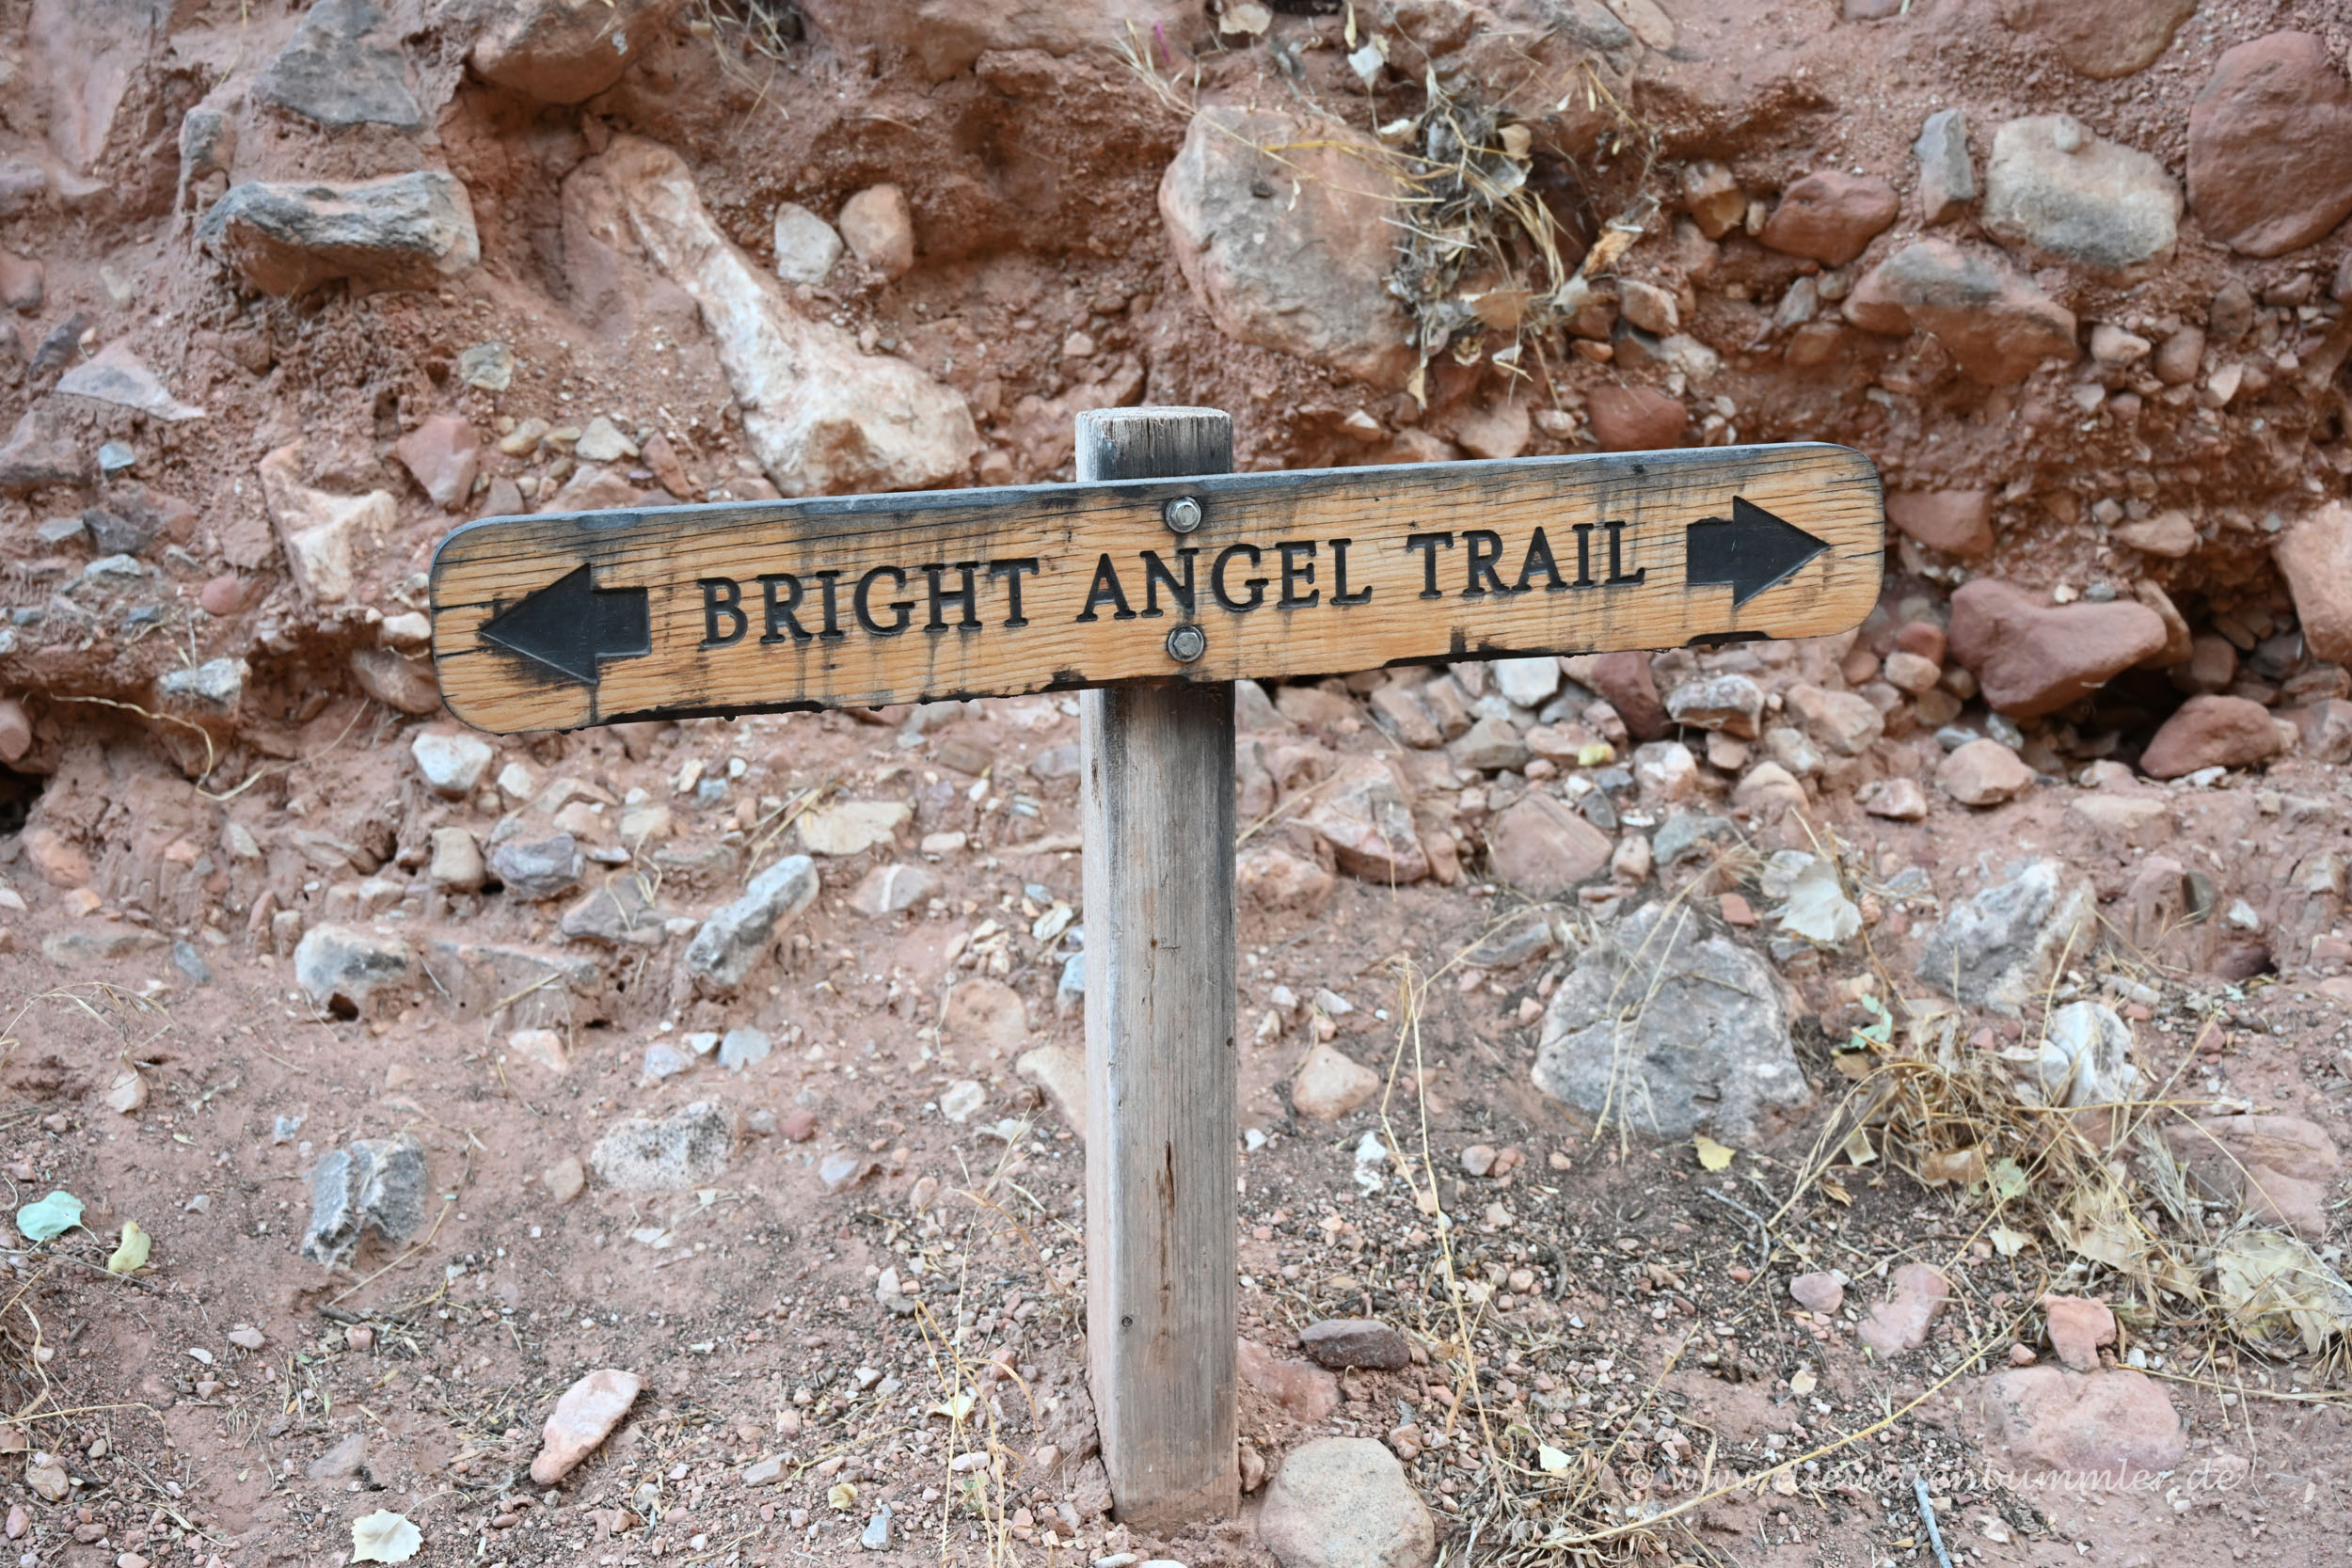 Wegweiser vom Bright Angel Trail